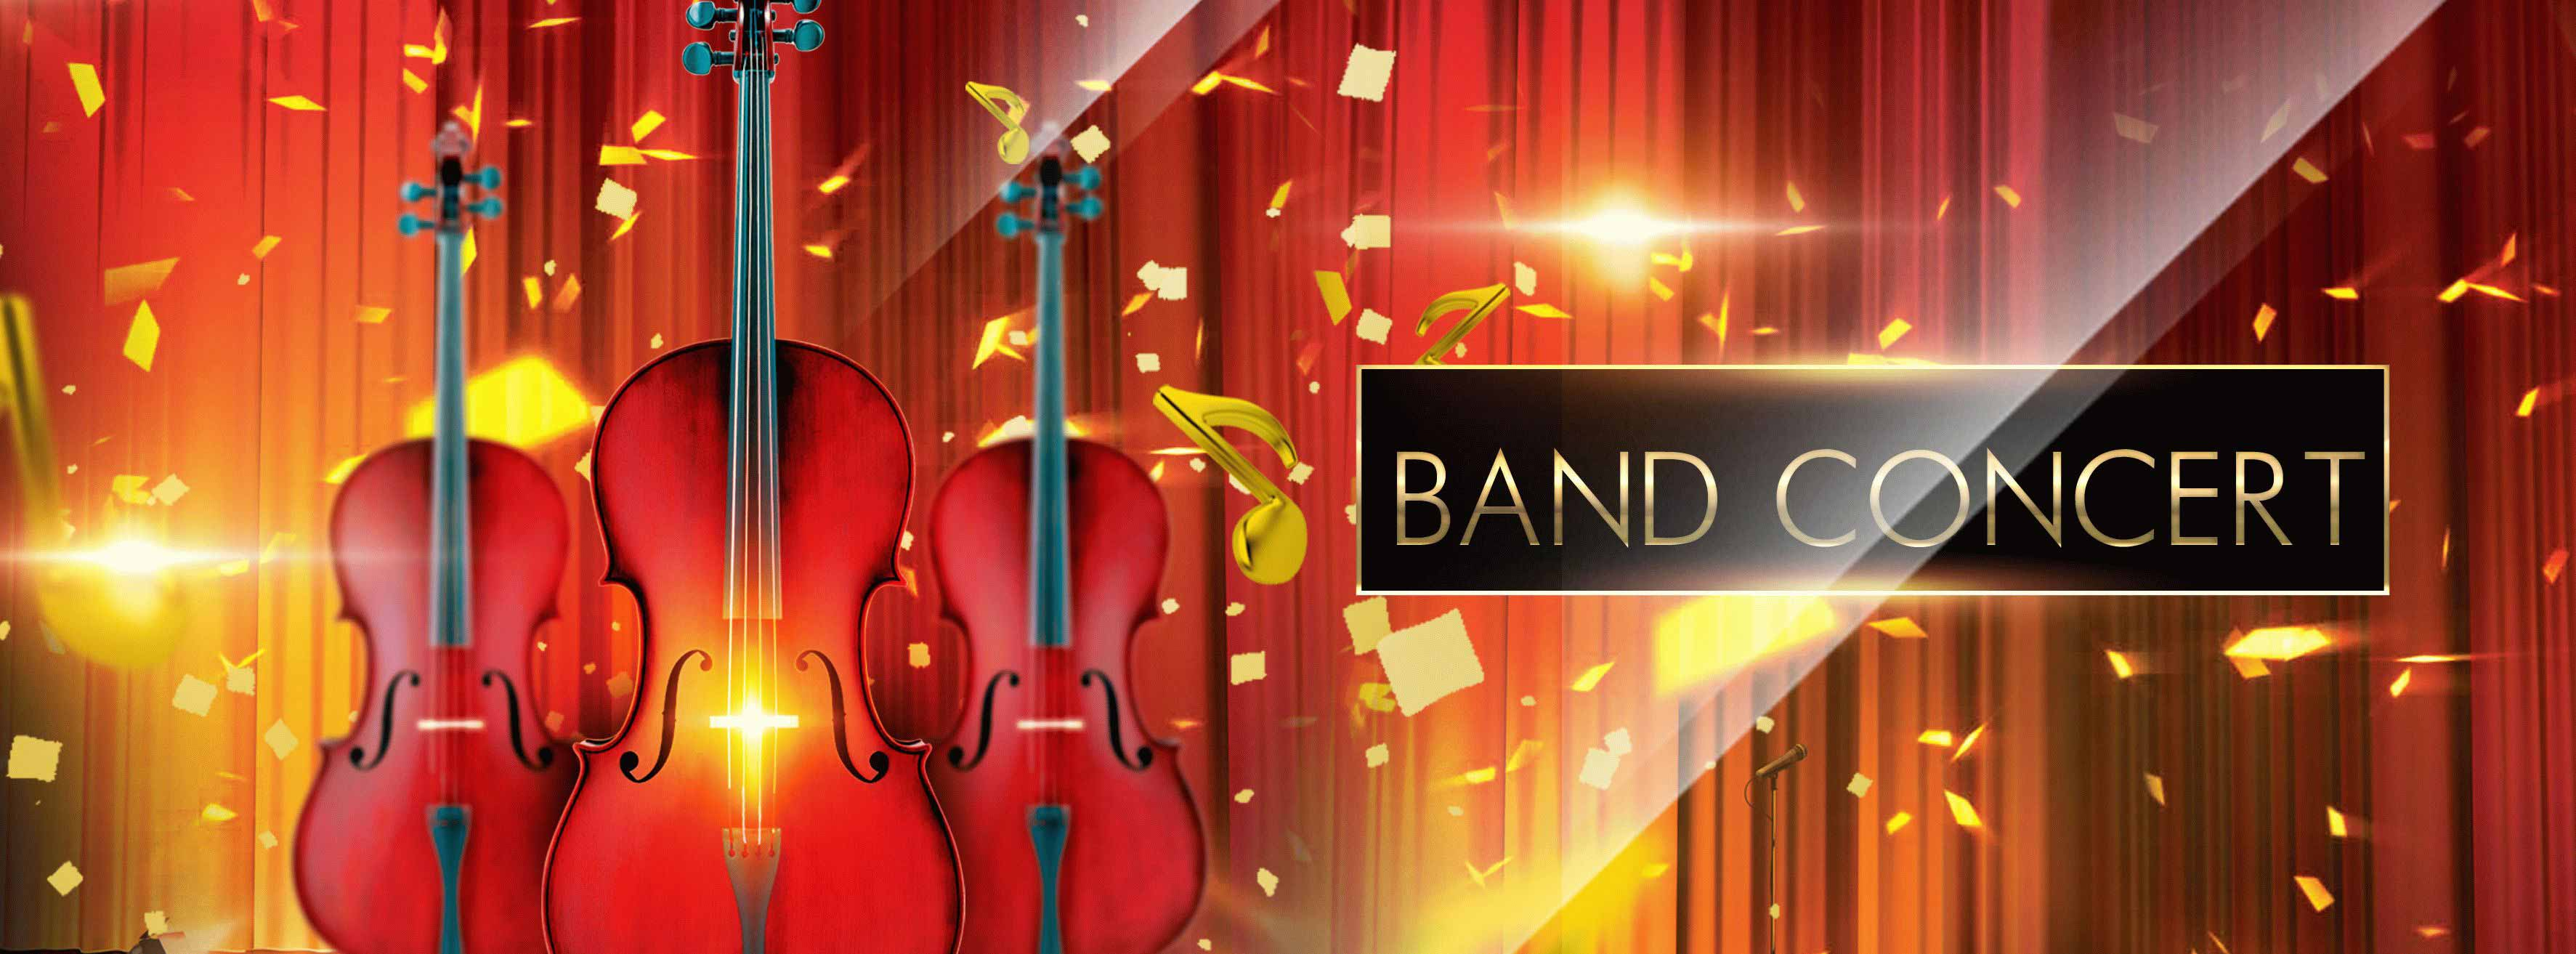 Band Concert PSD Flyer Template